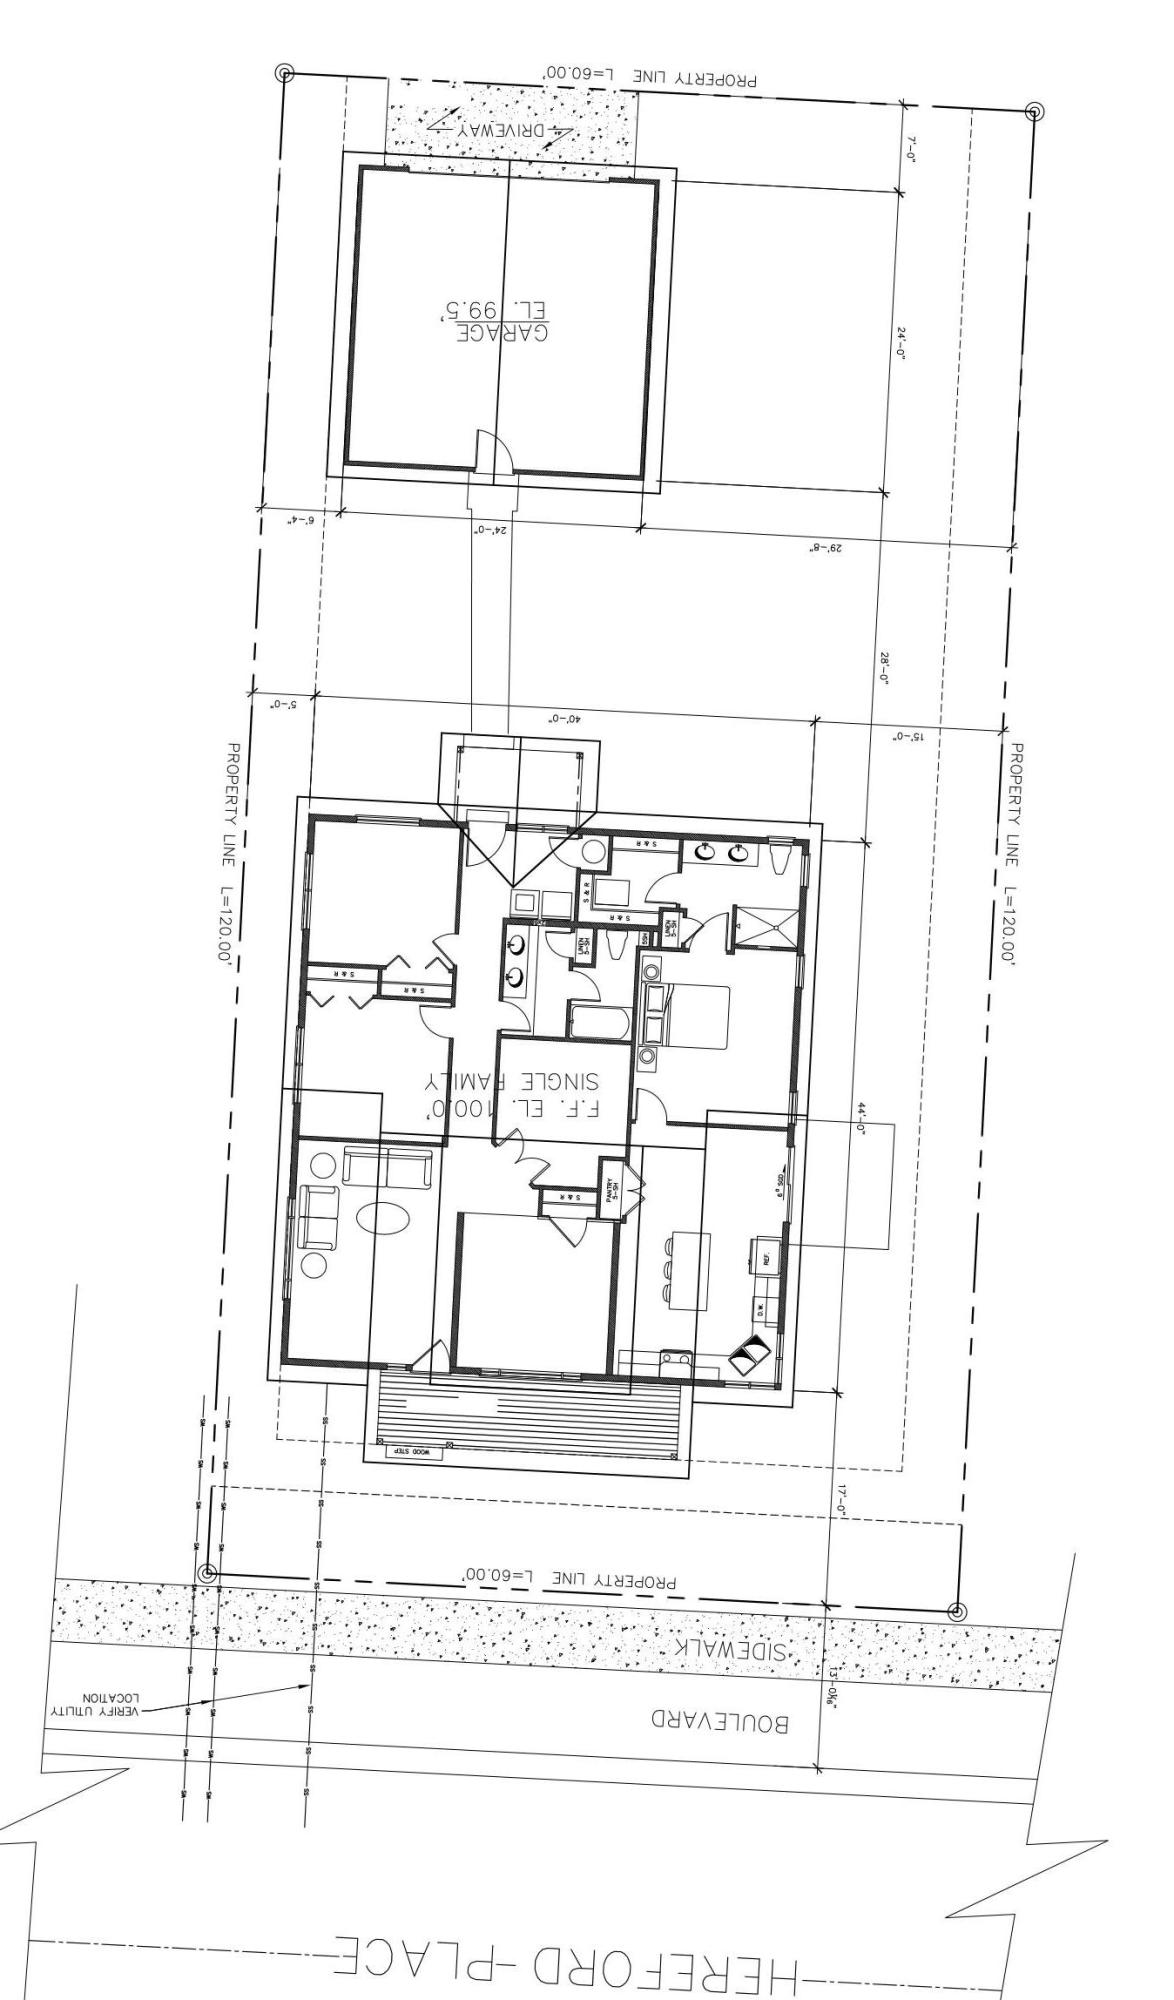 Hereford site plan